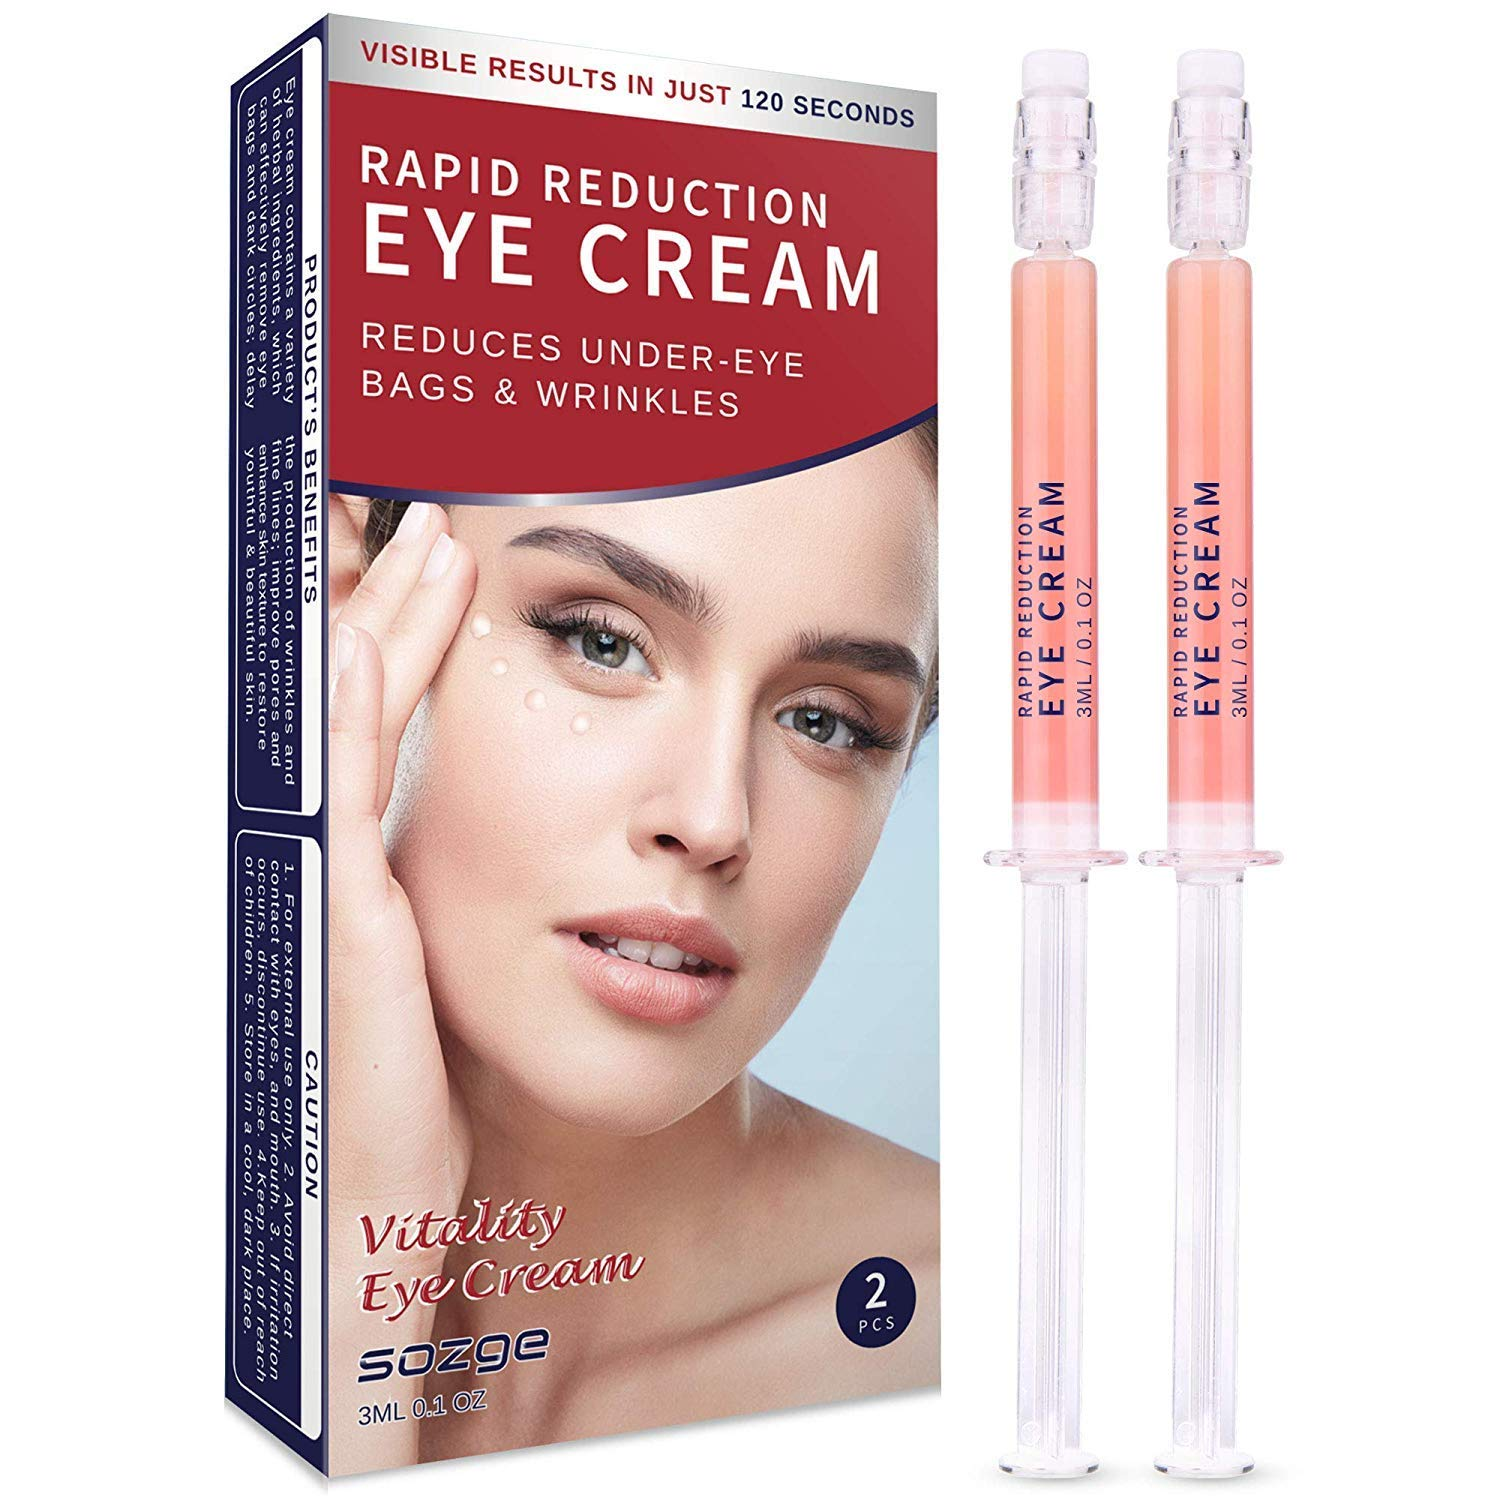 Rapid Reduction Eye Cream for Rapidly Reducing Bagginess, Puffiness, Dark Circles and Wrinkles in 120 Seconds by SOZGE 2Pcs by SOZGE